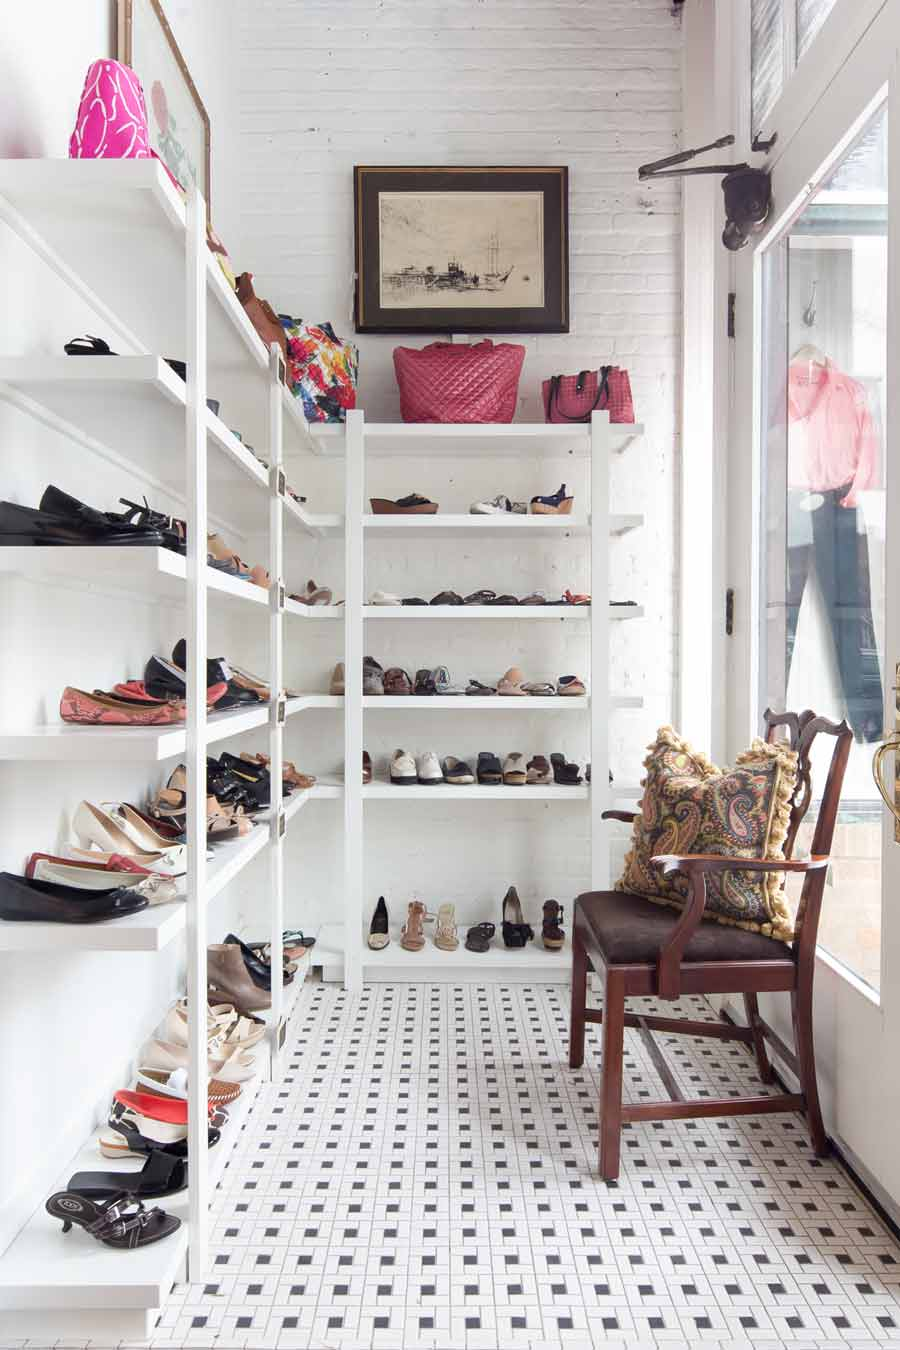 The shoe room at North Shore Exchange. PHOTOGRAPHY BY KATHLEEN PAGE